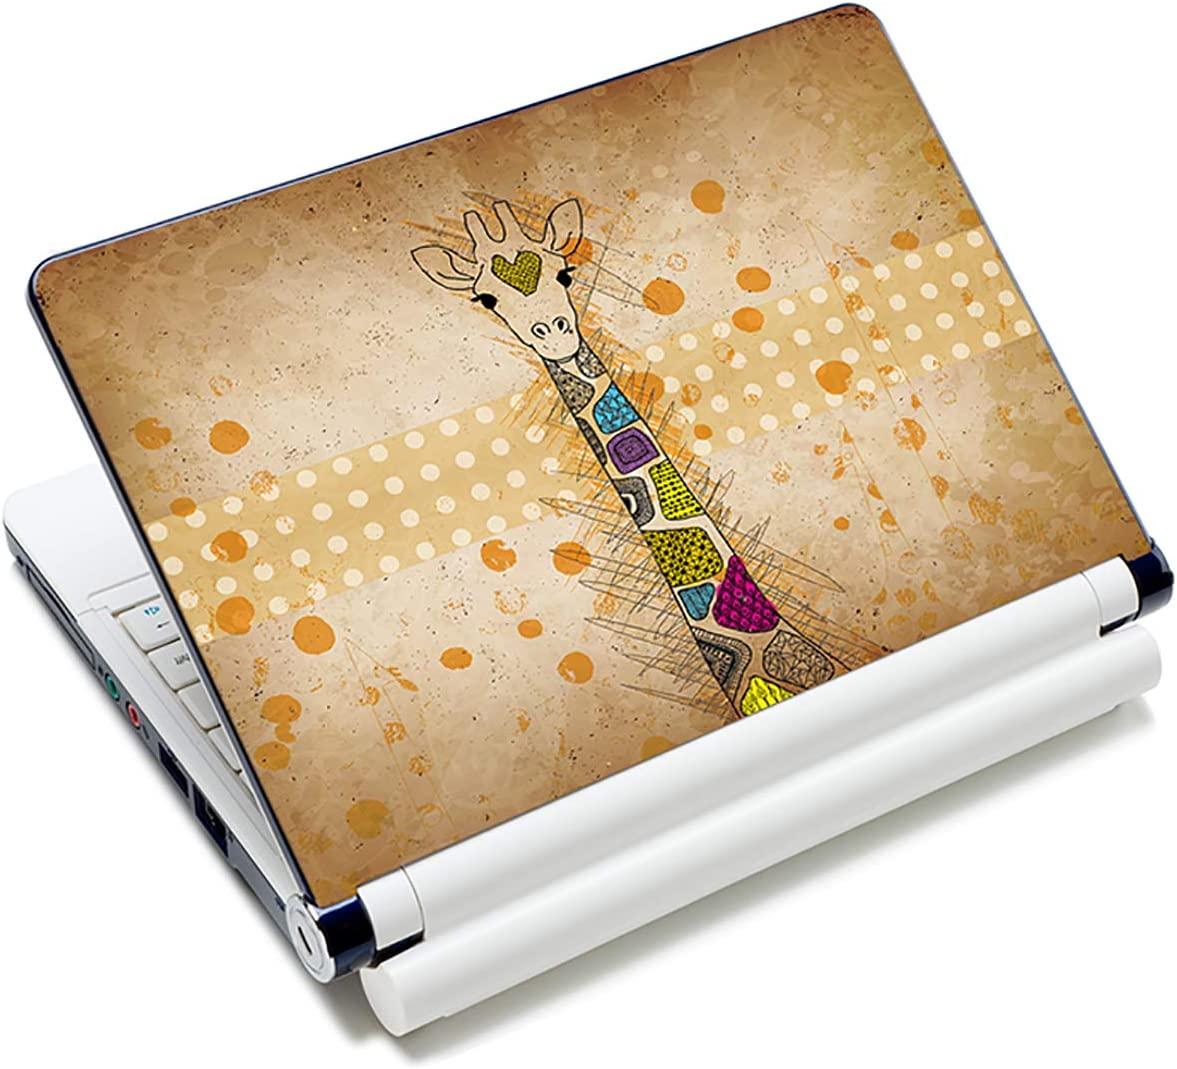 Giraffe 12.1 13 13.3 14 15 15.4 15.6 Inches Personalized Laptop Skin Sticker Decal Universal Netbook Skin Sticker Reusable Notebook PC Art Decal Protector Cover Case by AORTDES